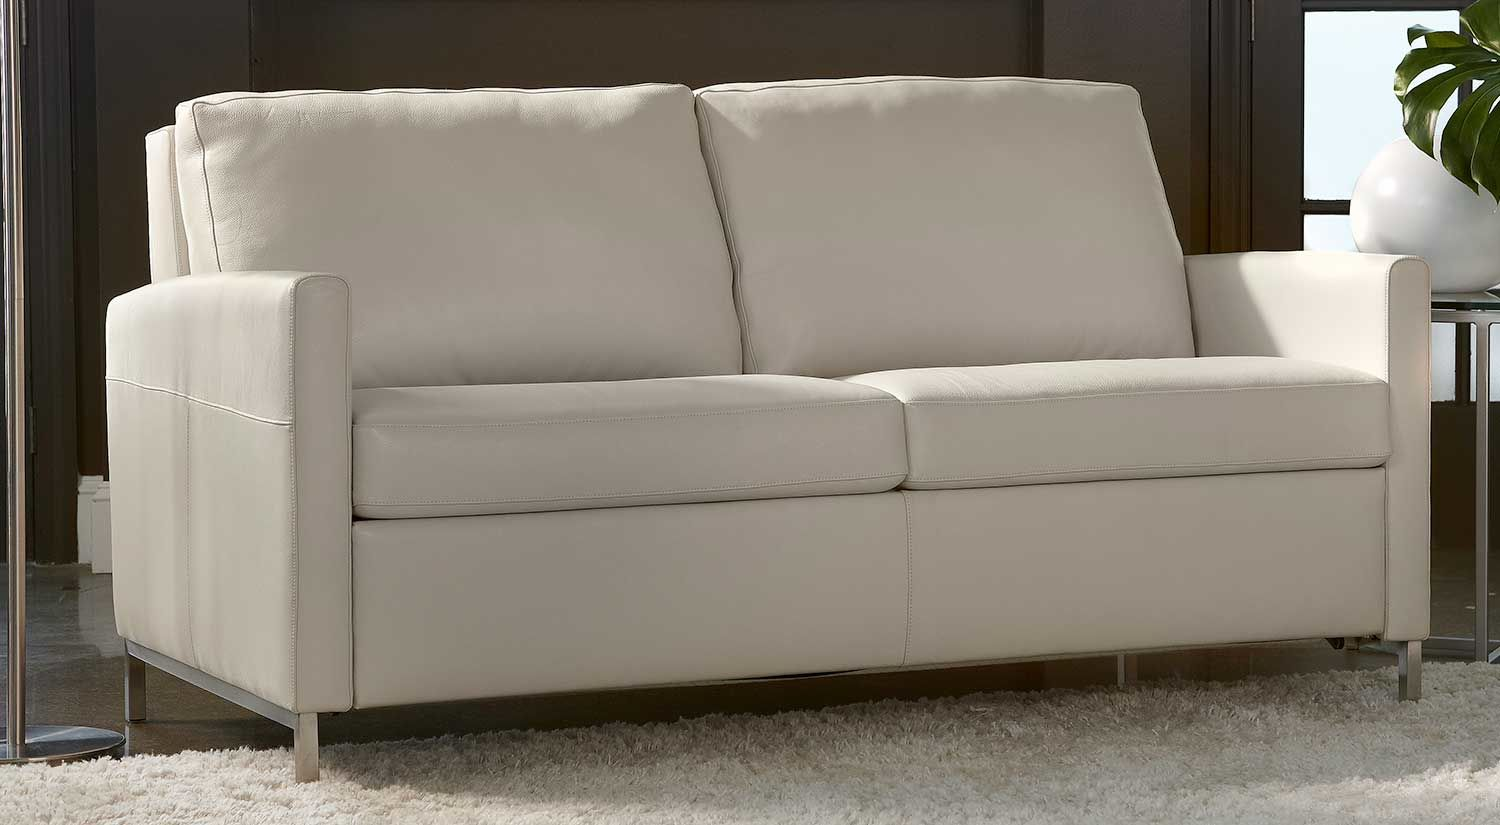 fascinating sofa bed price inspiration-Lovely sofa Bed Price Construction